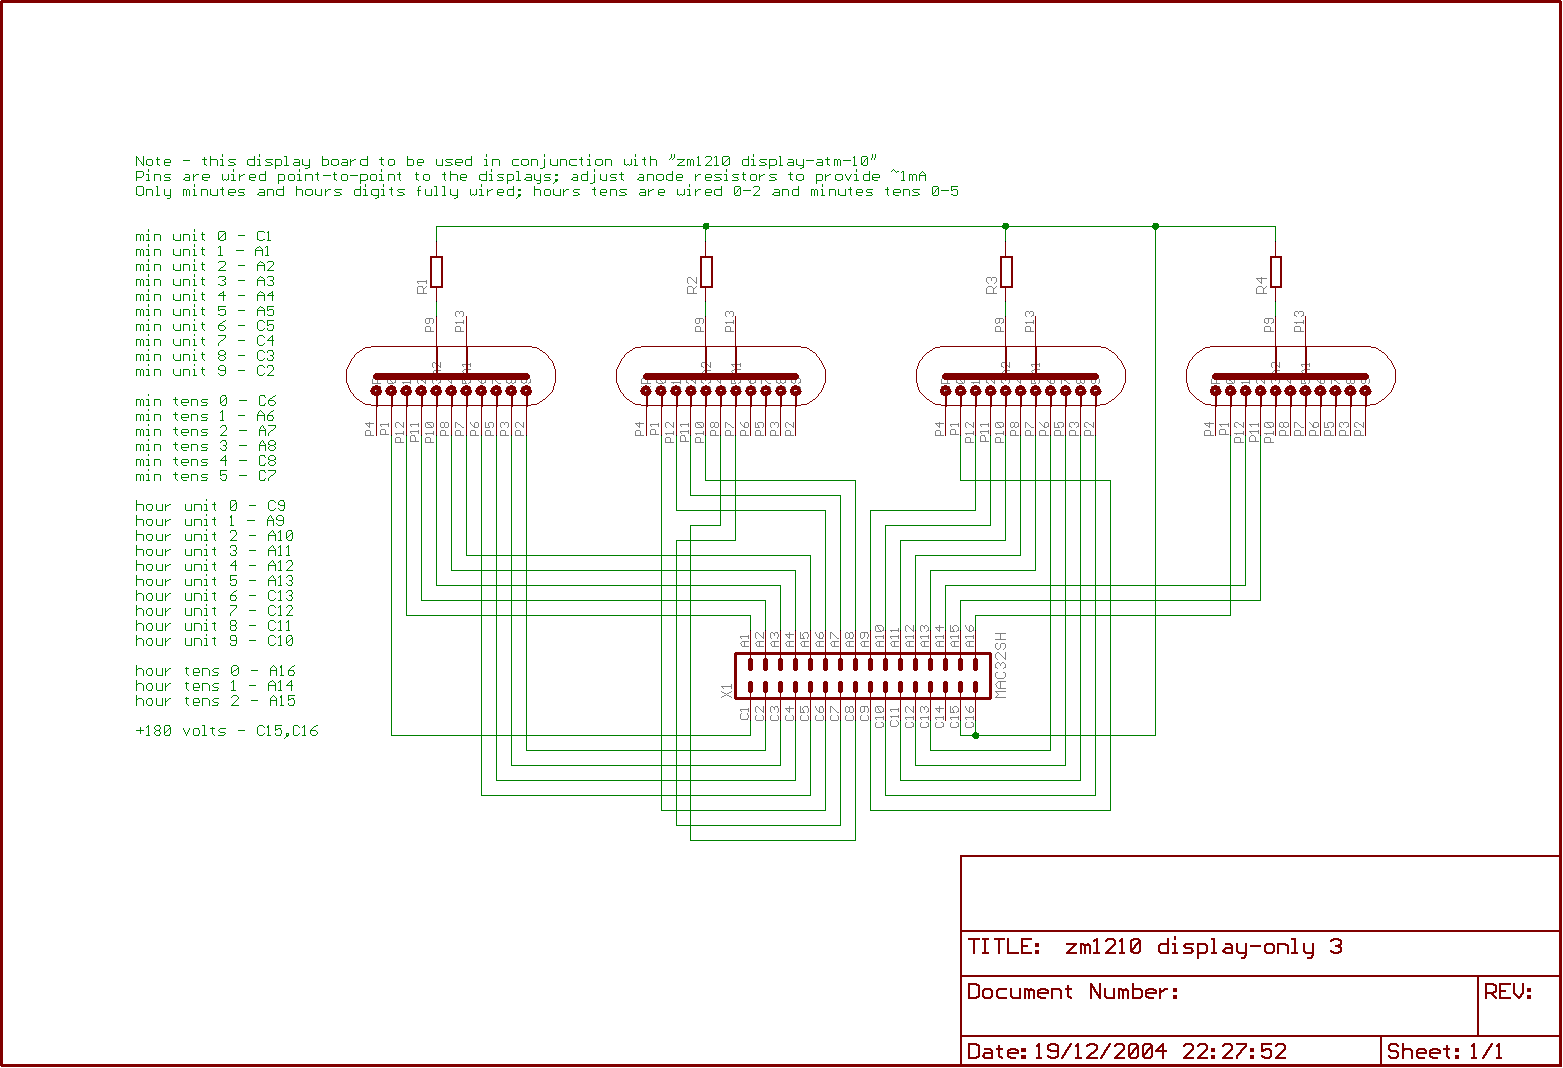 Barnacles Nixie Clock 2 Picture Of Eagle Layout Circuit Board Display Diagram Cad Controller Schematic